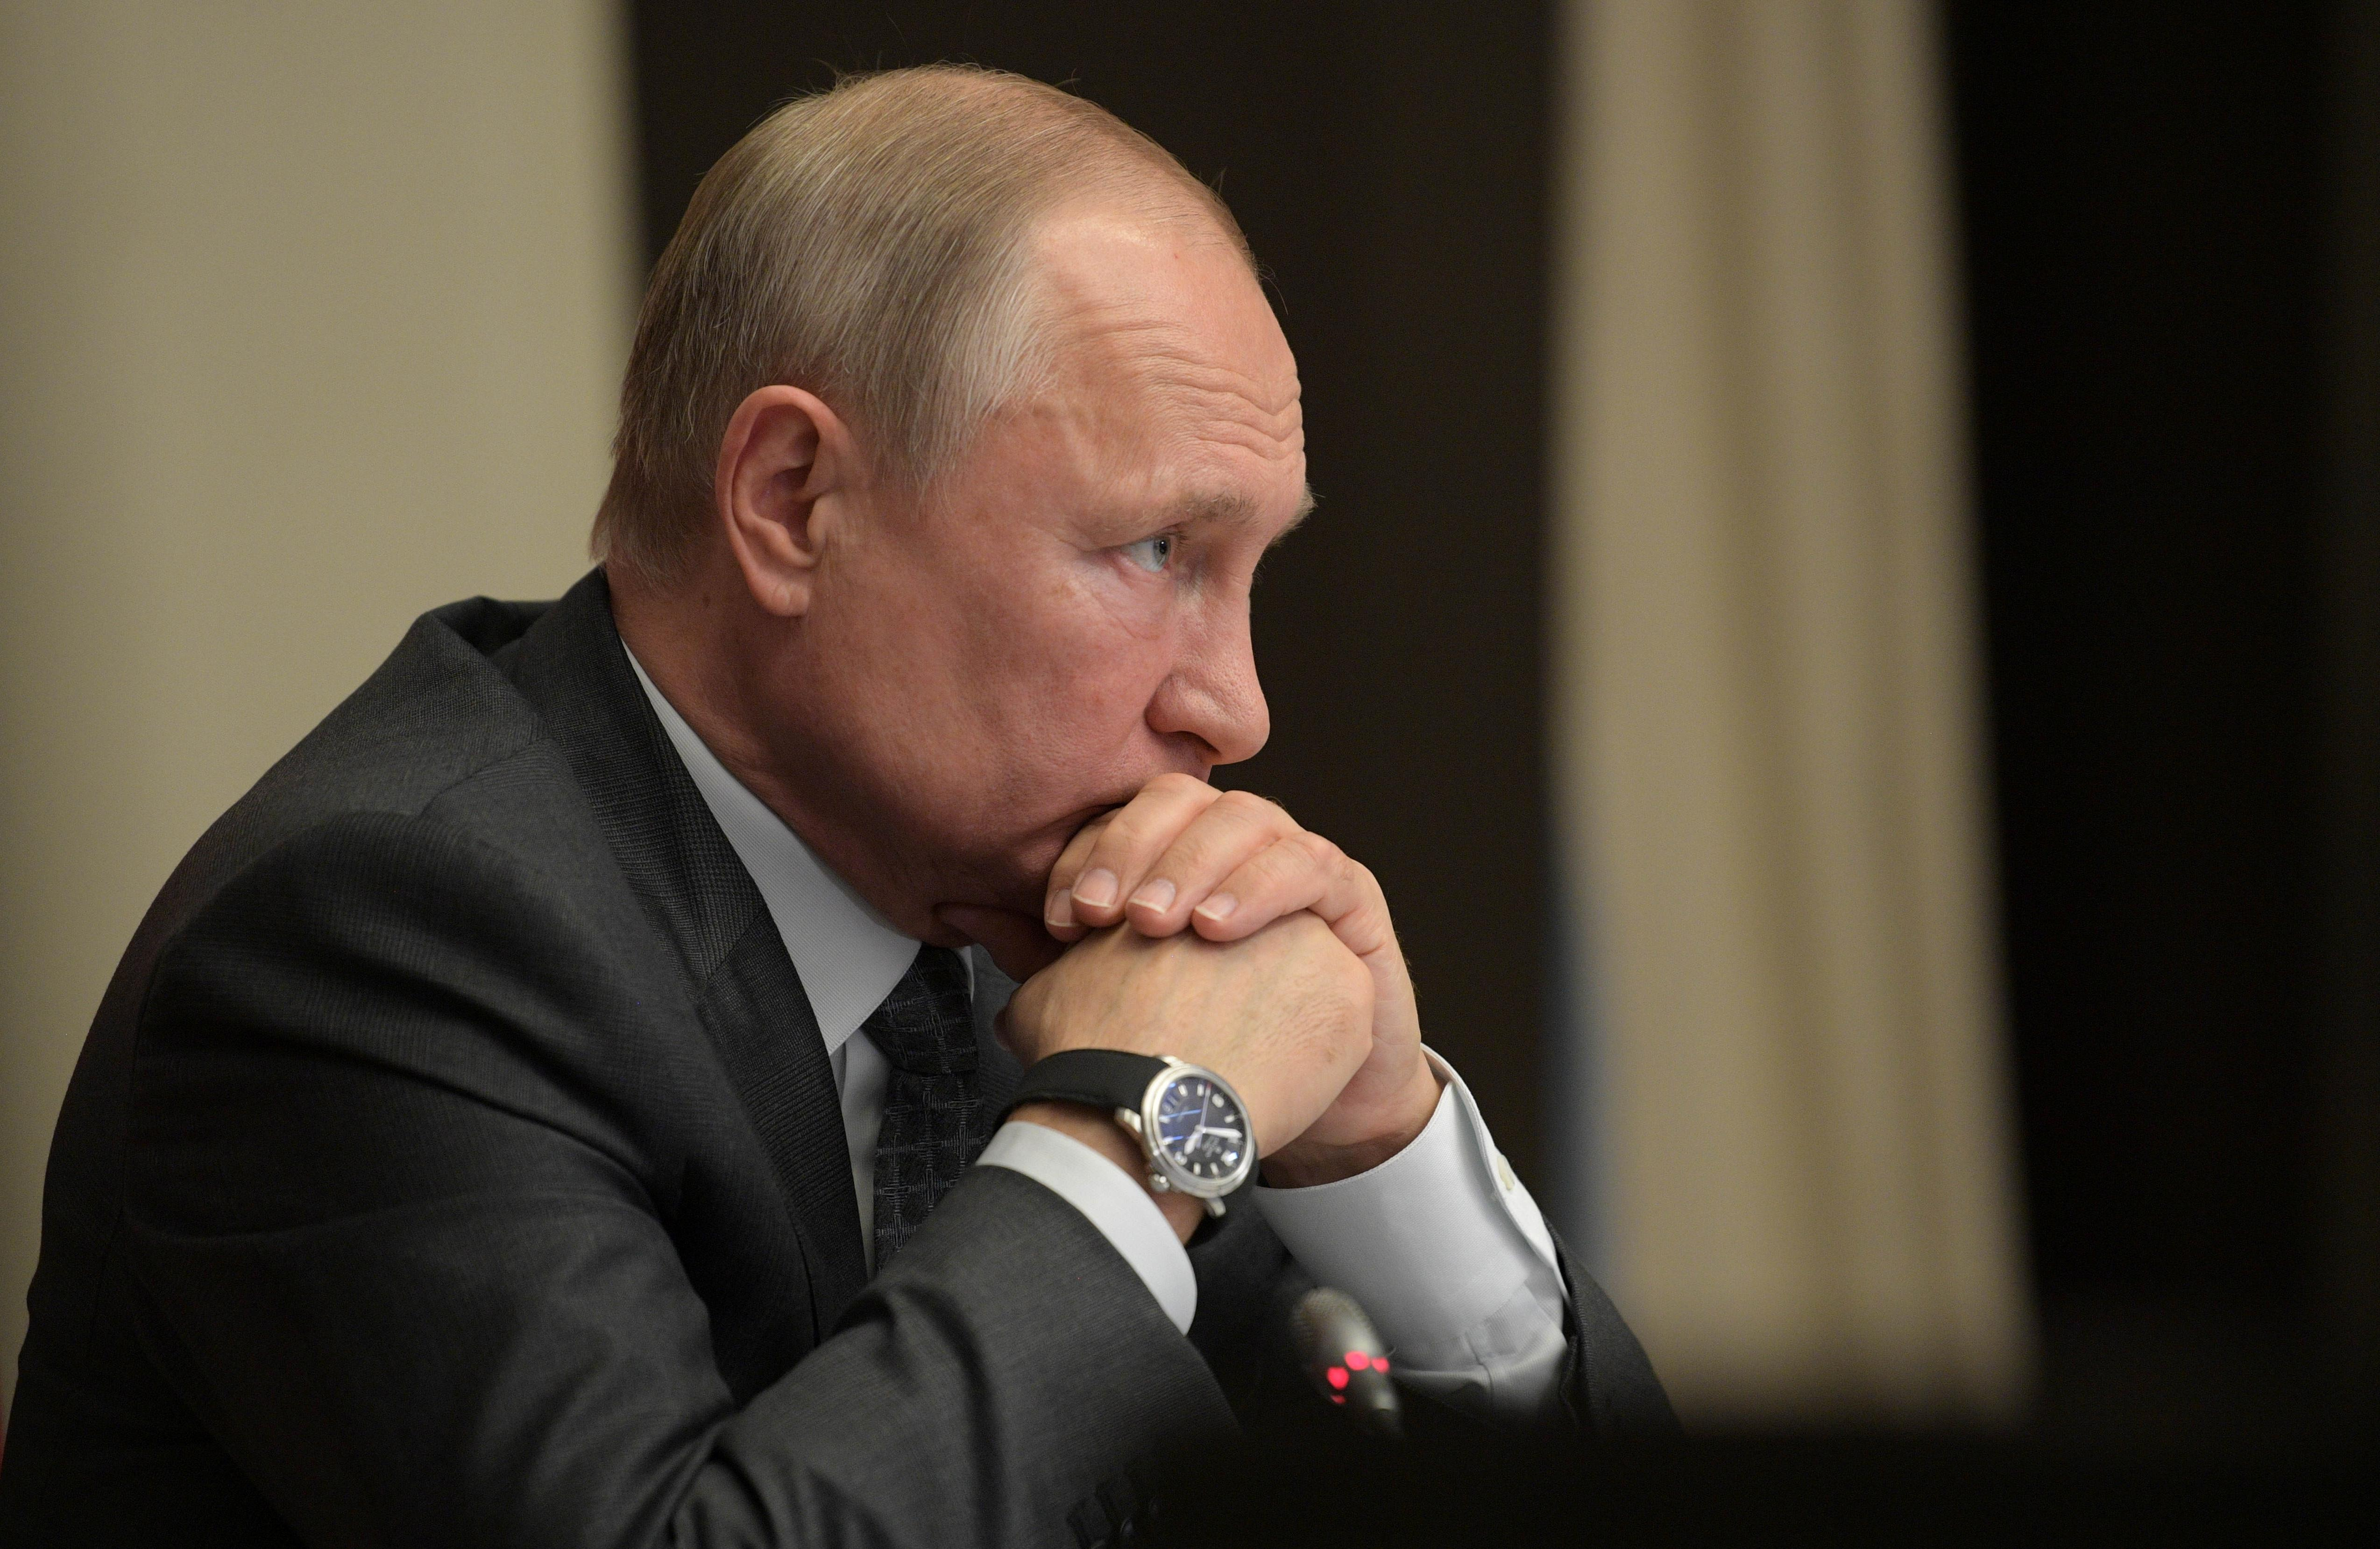 Putin steps up push for influence in Africa with broadside against...